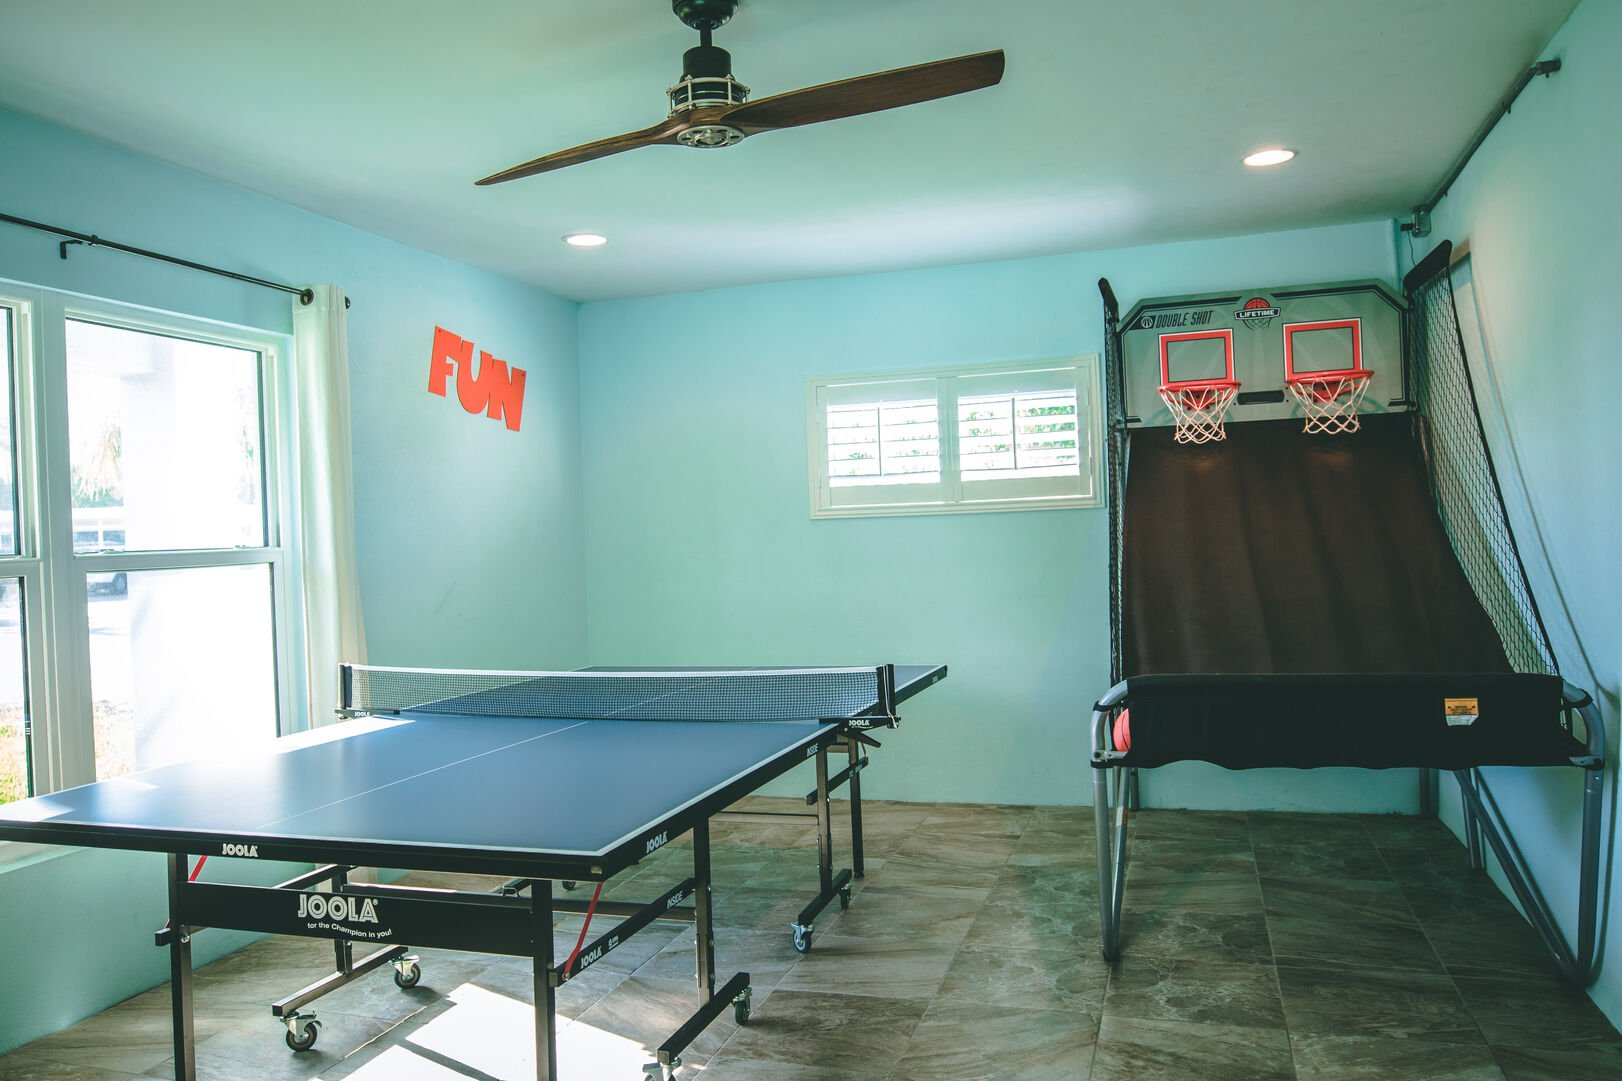 Game room with ping pong table and more